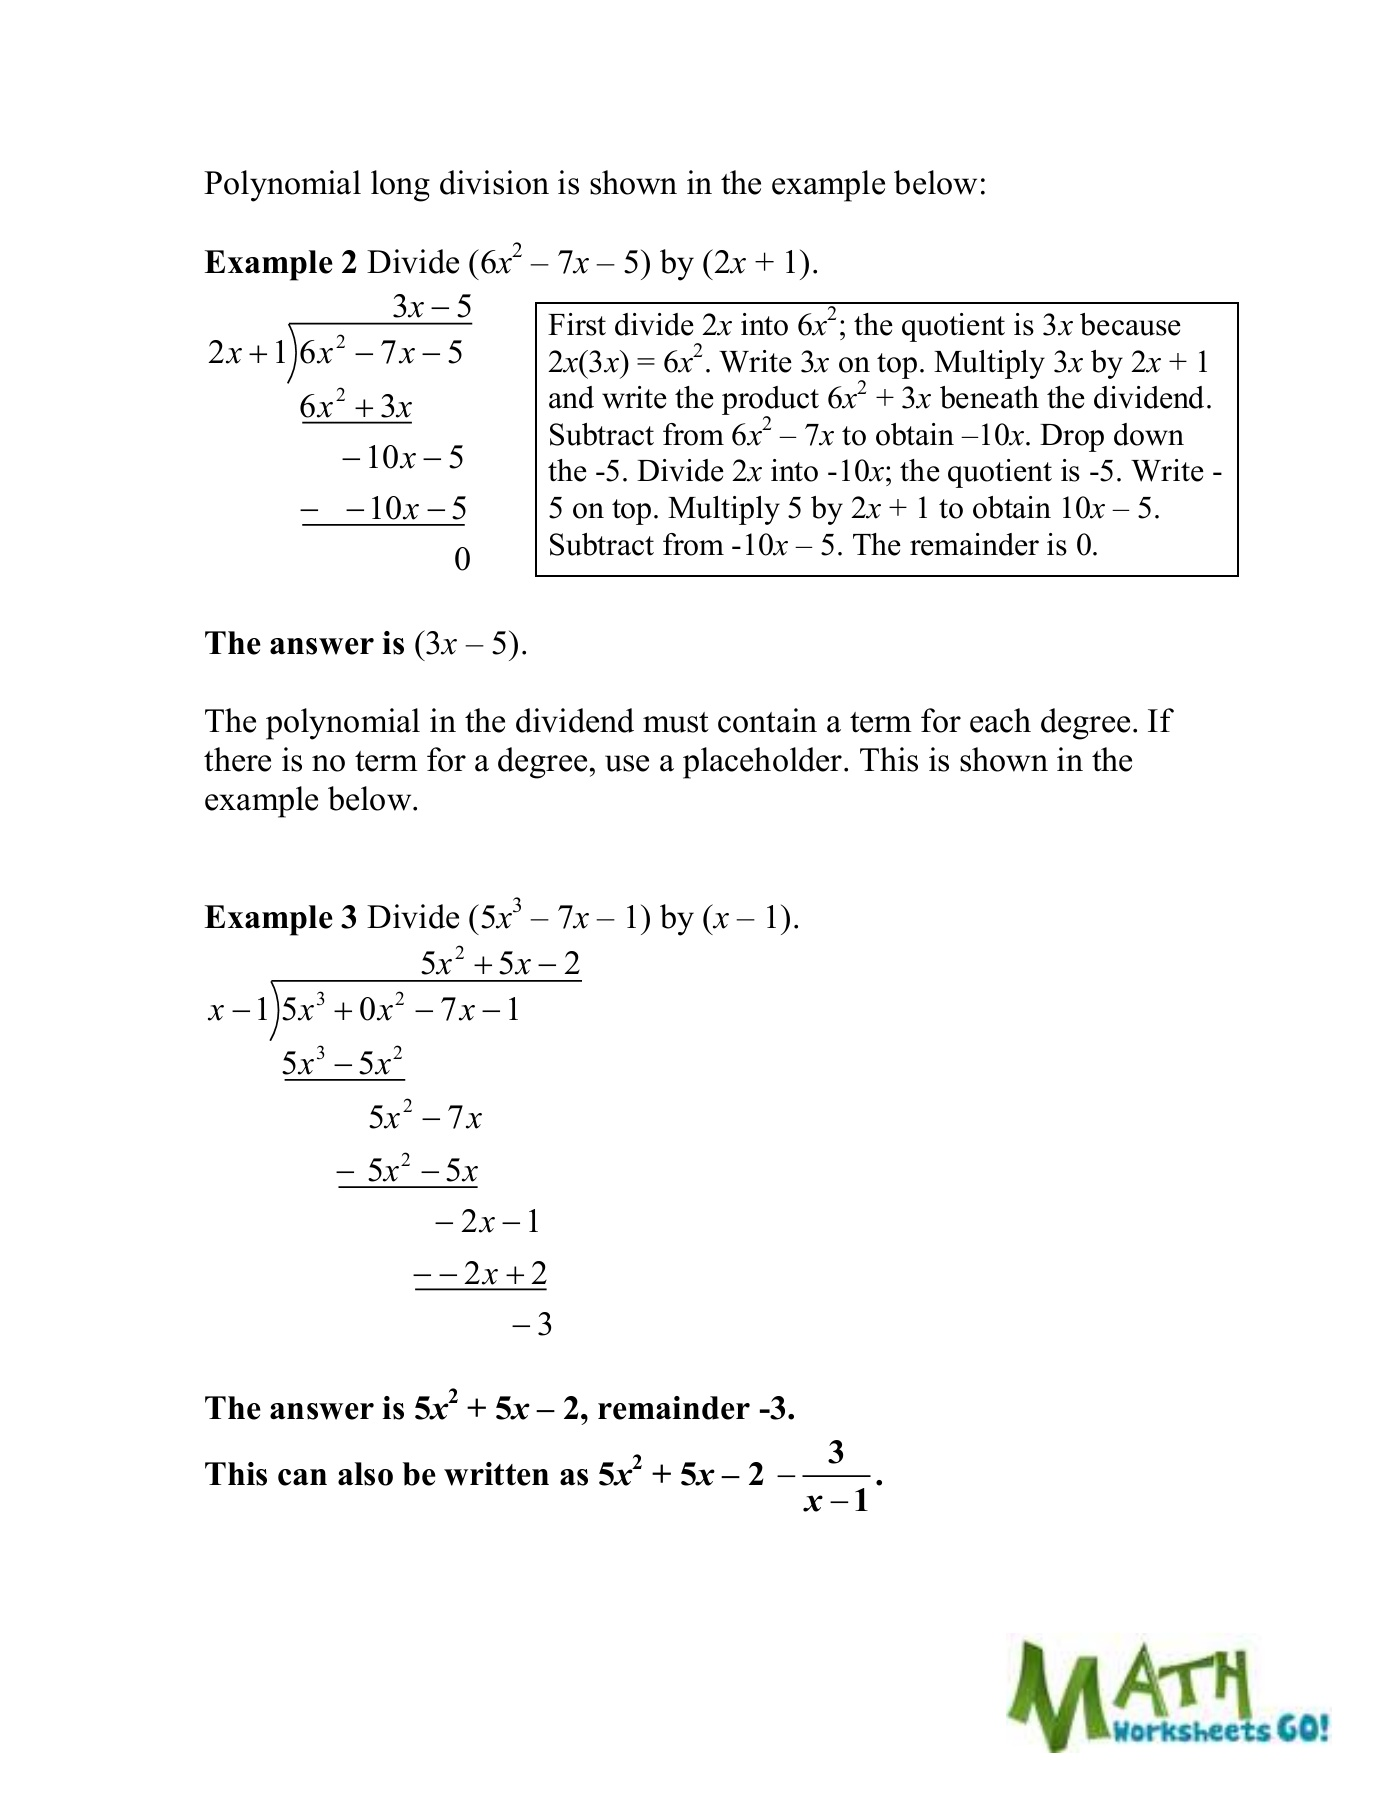 Dividing Polynomials Worksheet Answers